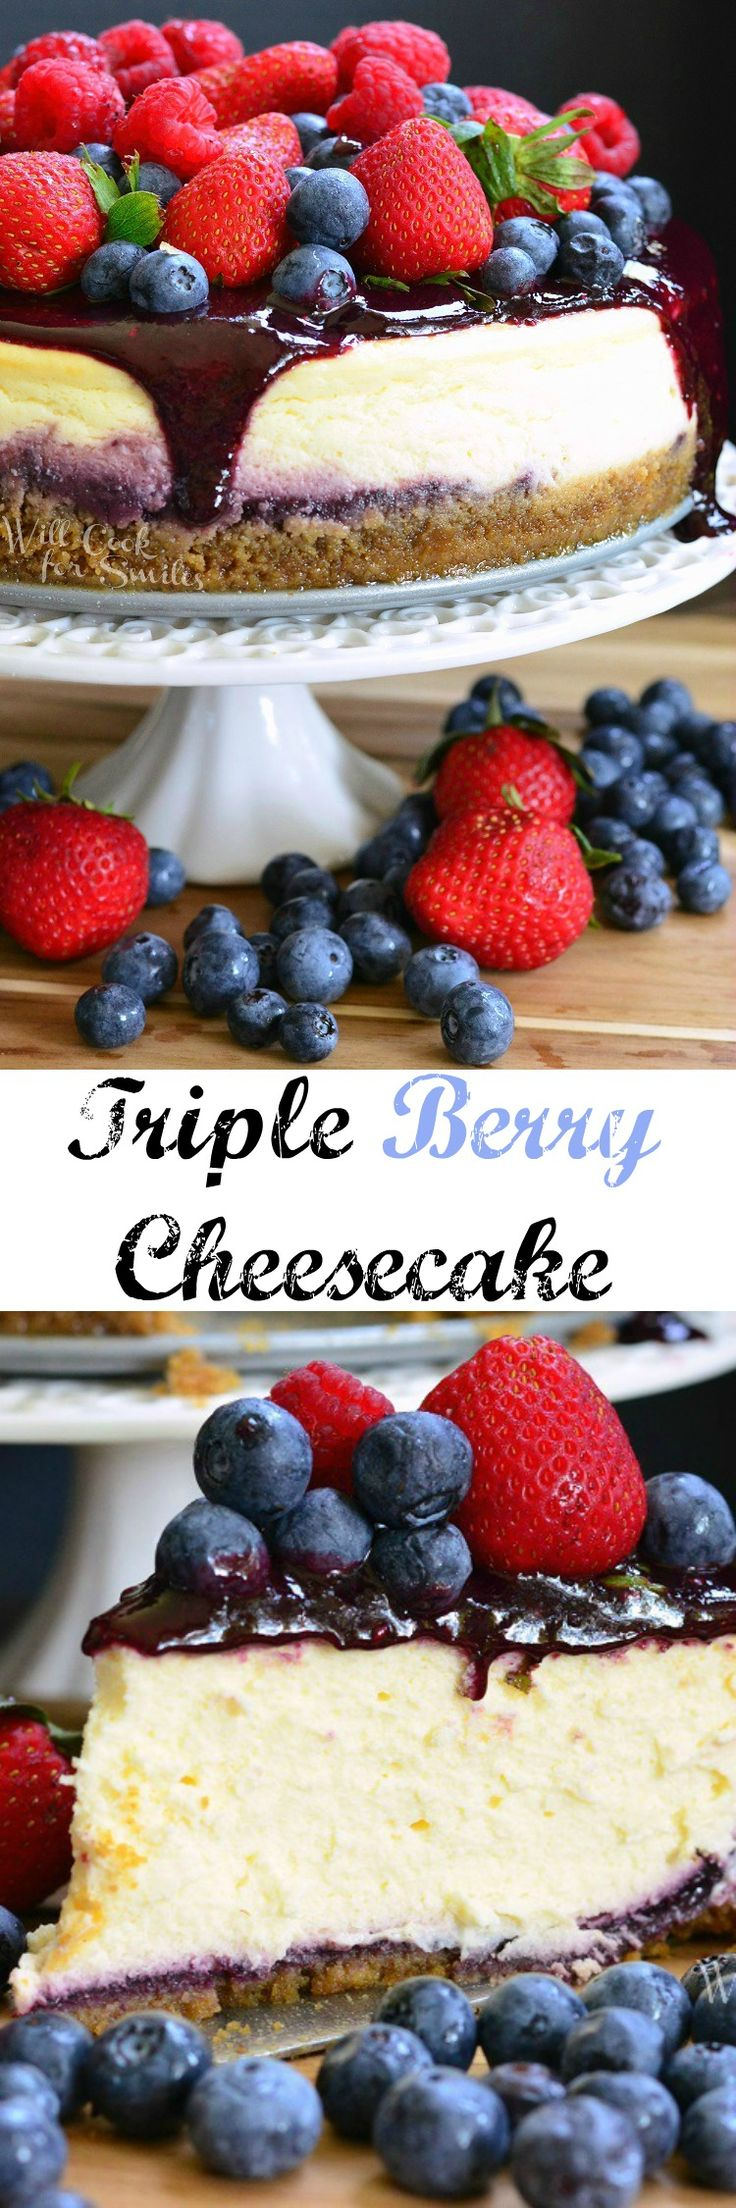 Mixed Berry Cheesecake aka Red, White, and Blue Cheesecake   Will Cook For Smiles   Bloglovin'